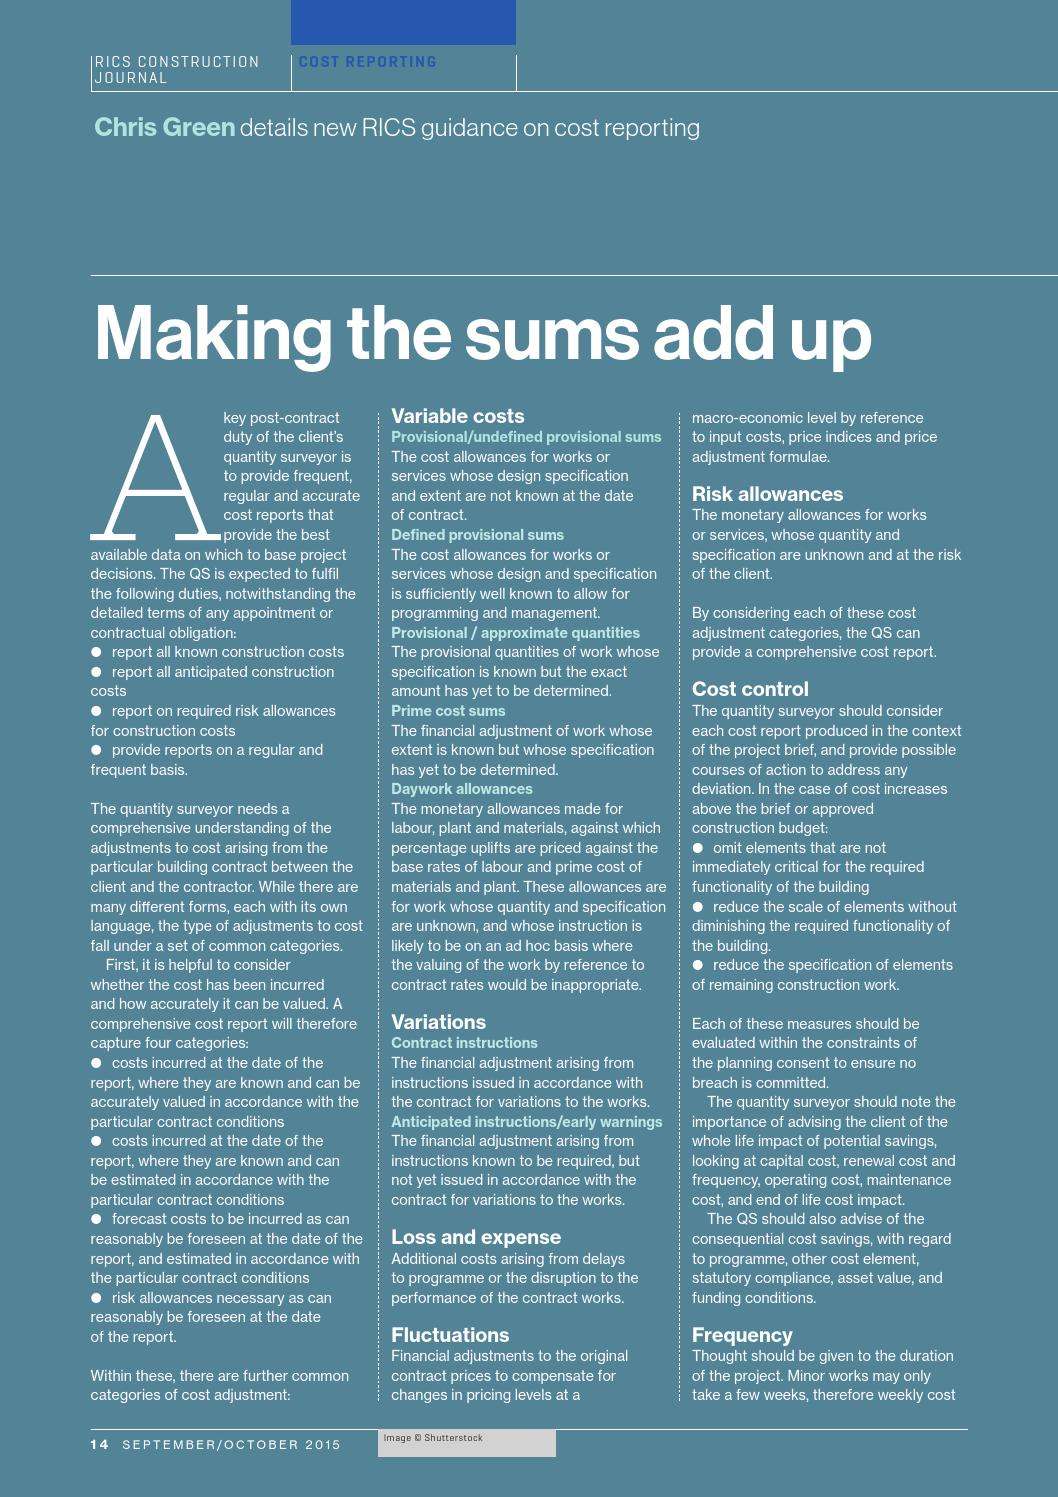 Construction journal september october 2015 by rics issuu for Allowances in construction contracts